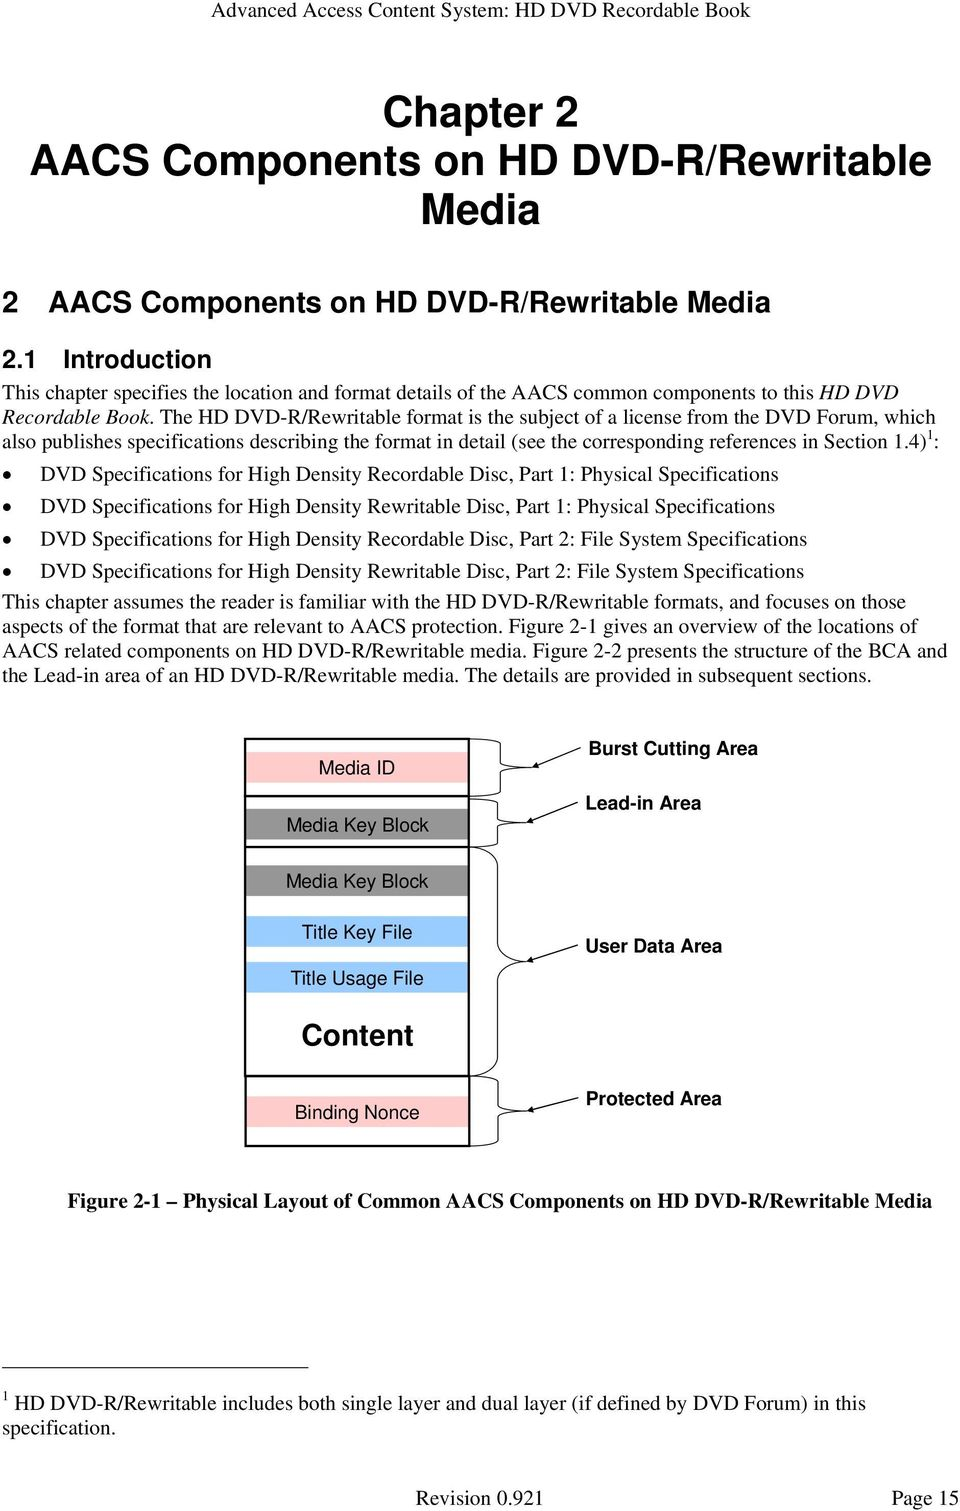 The HD DVD-R/Rewritable format is the subject of a license from the DVD Forum, which also publishes specifications describing the format in detail (see the corresponding references in Section 1.